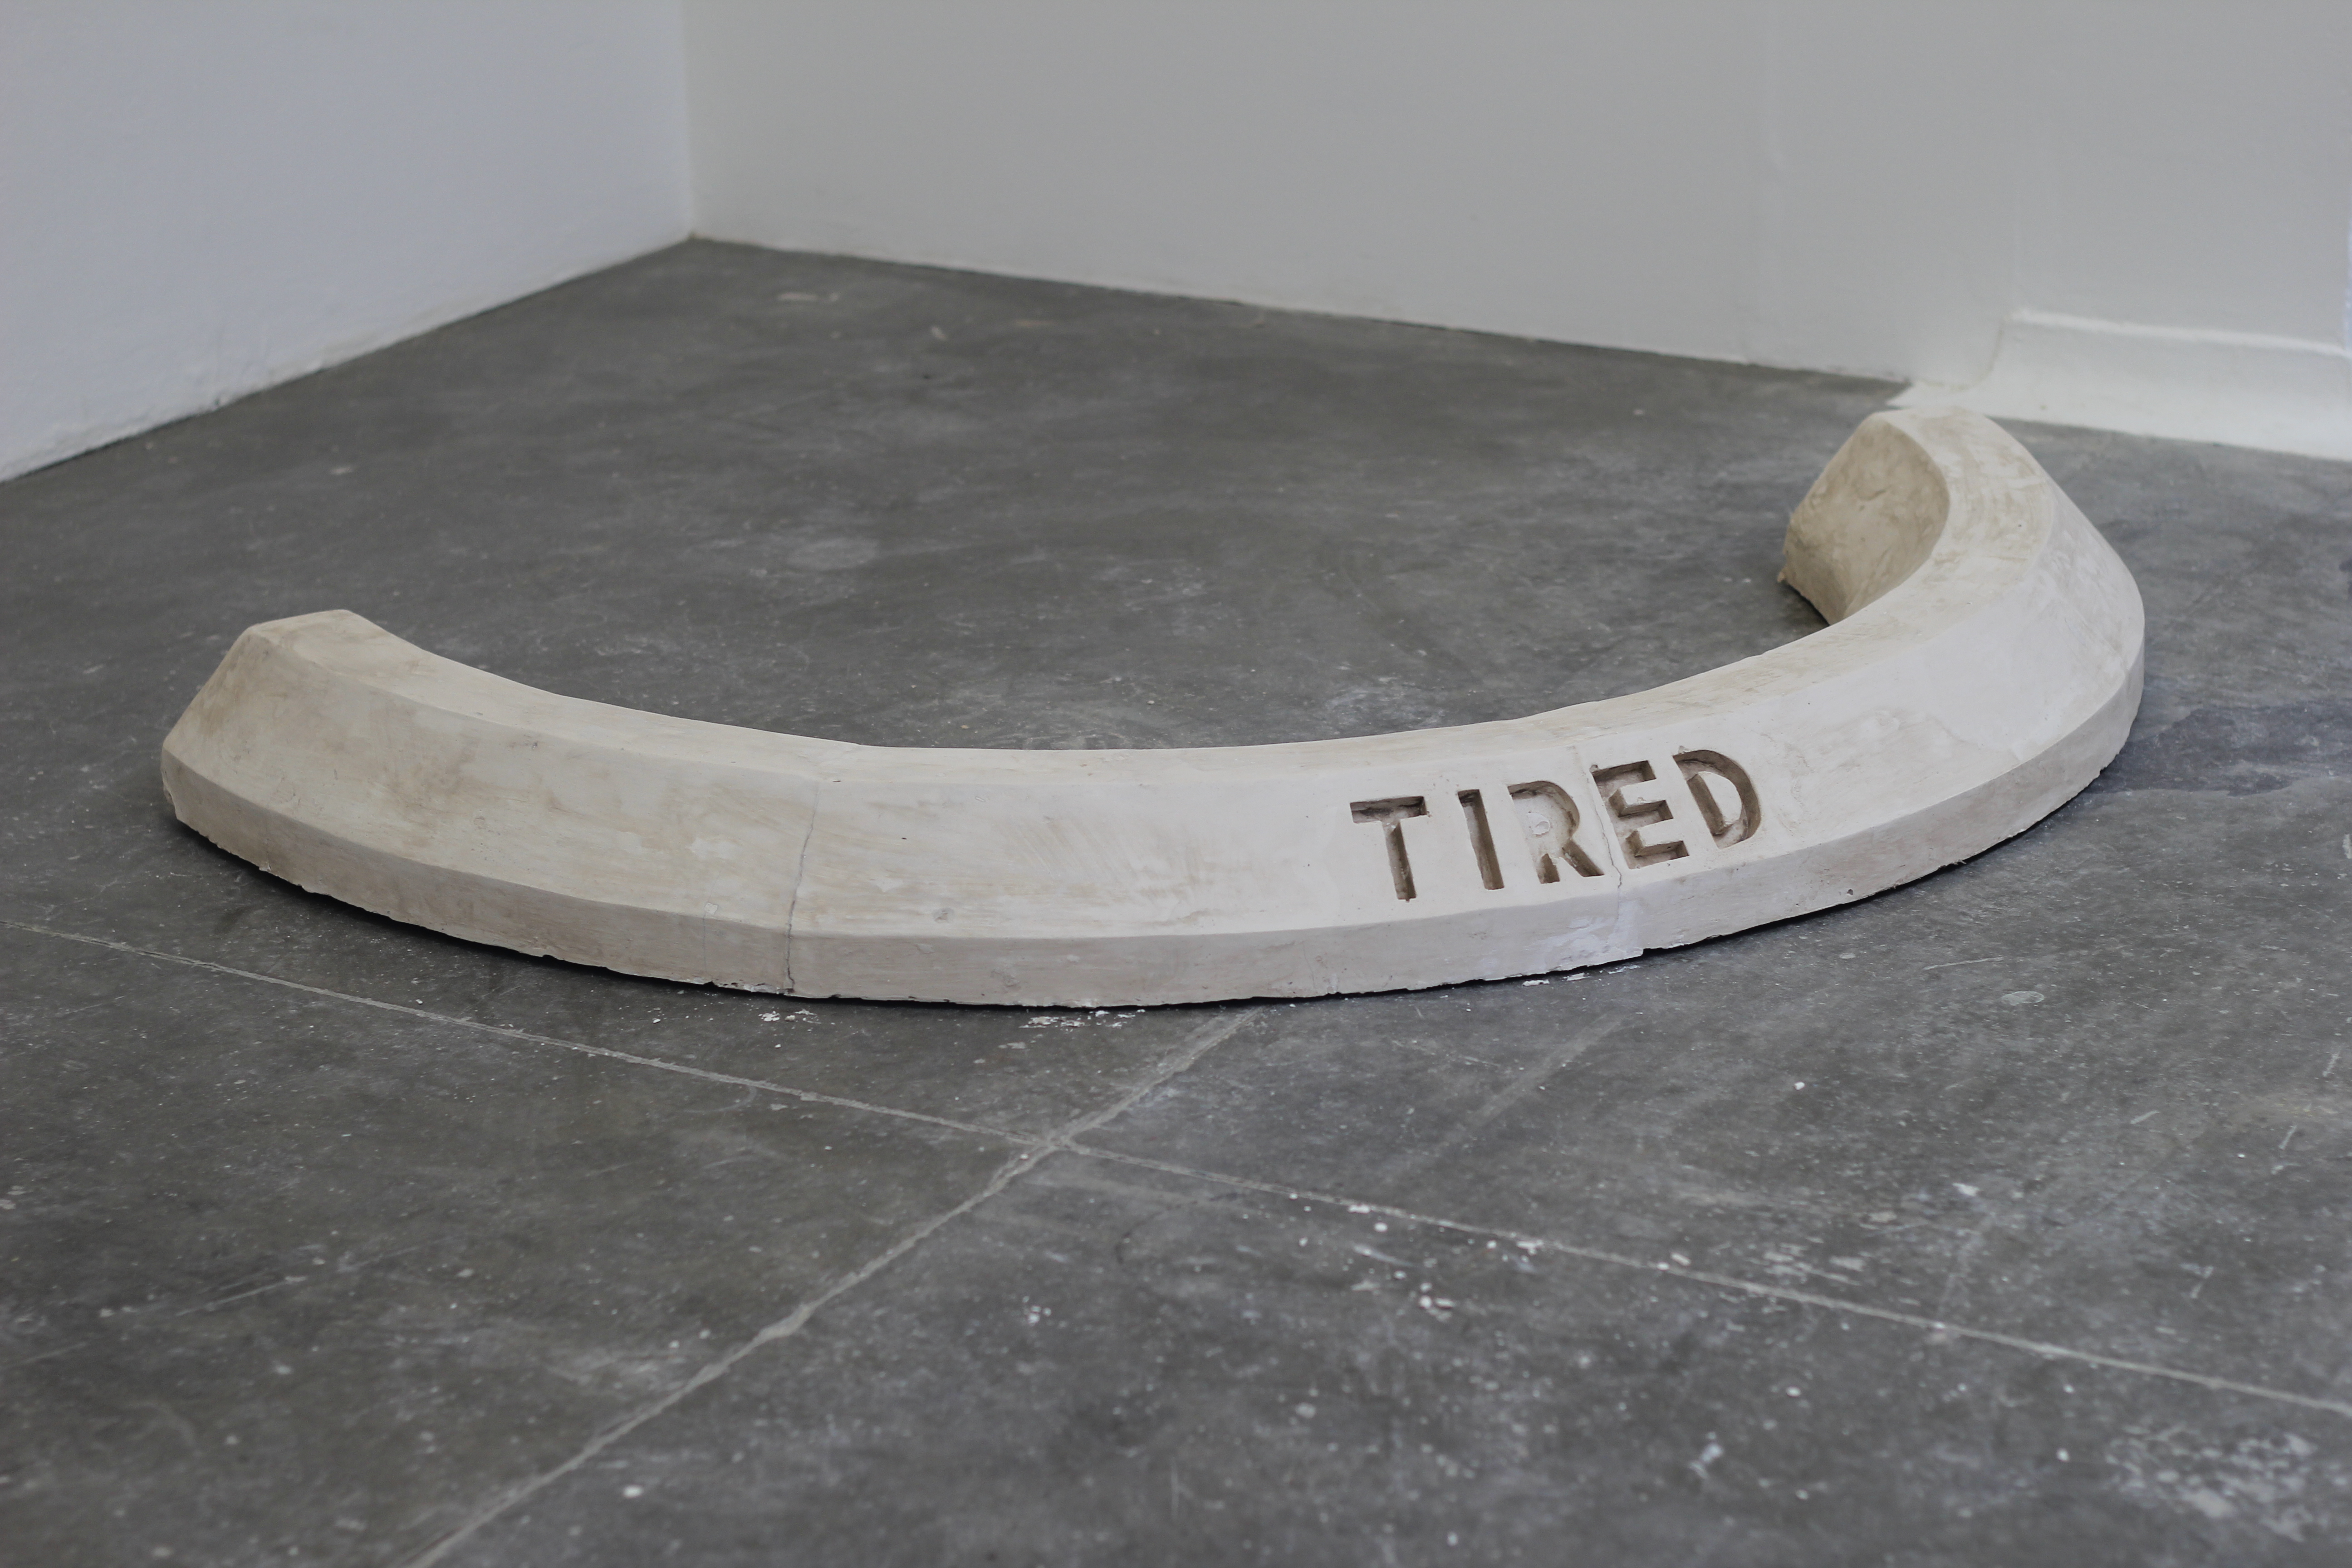 Parking kerb Sculpture 'Tired' by Josh Philpott